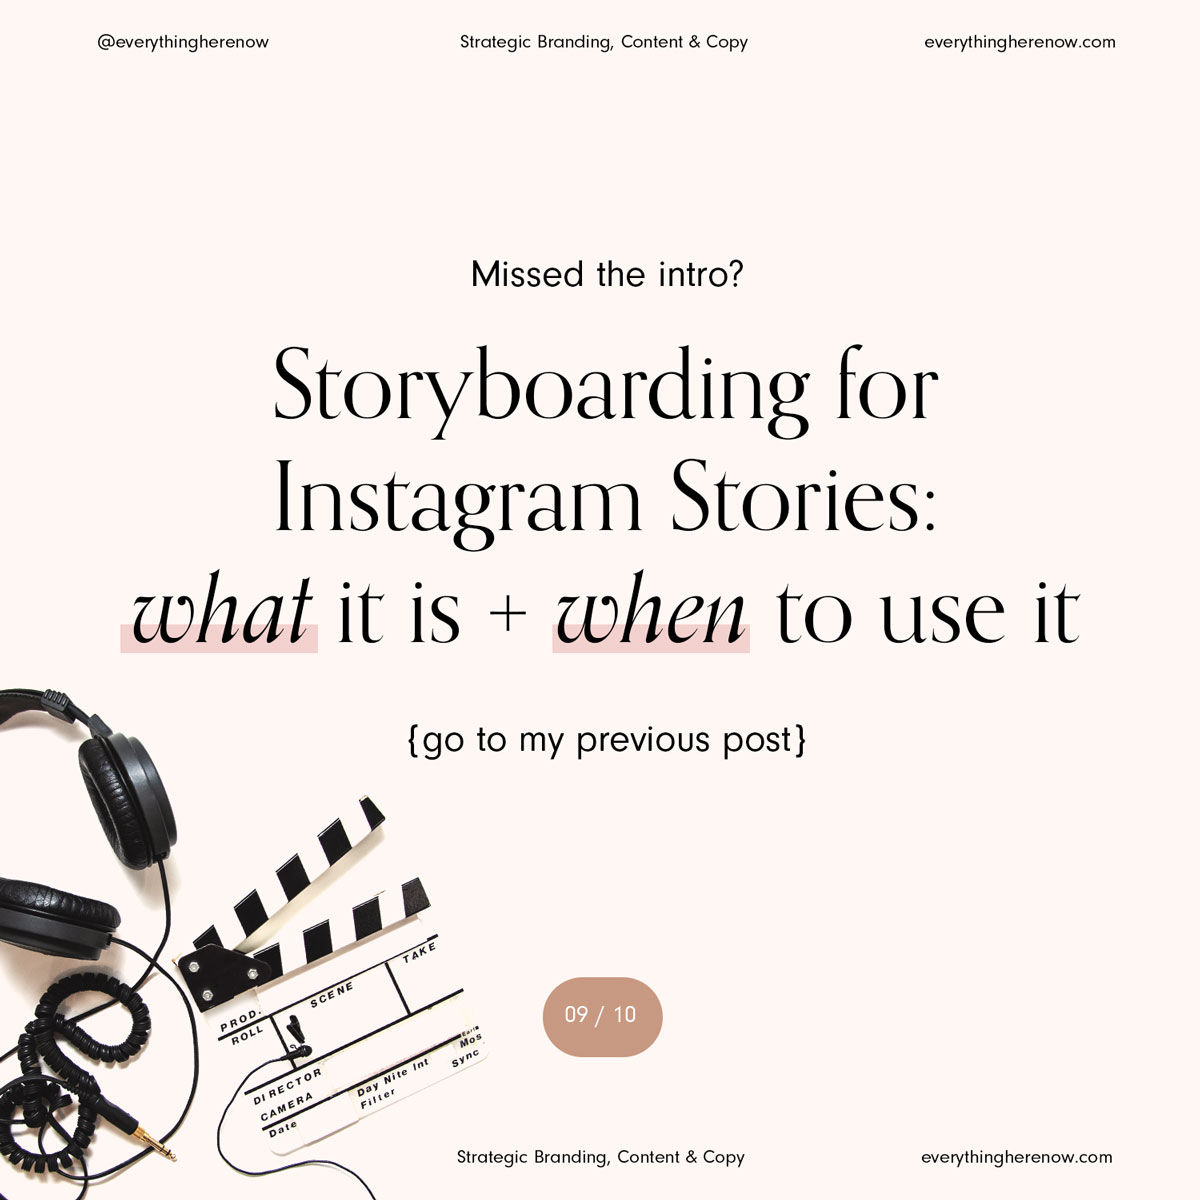 how-to-storyboard-instagram-stories-by-everything-here-now-9